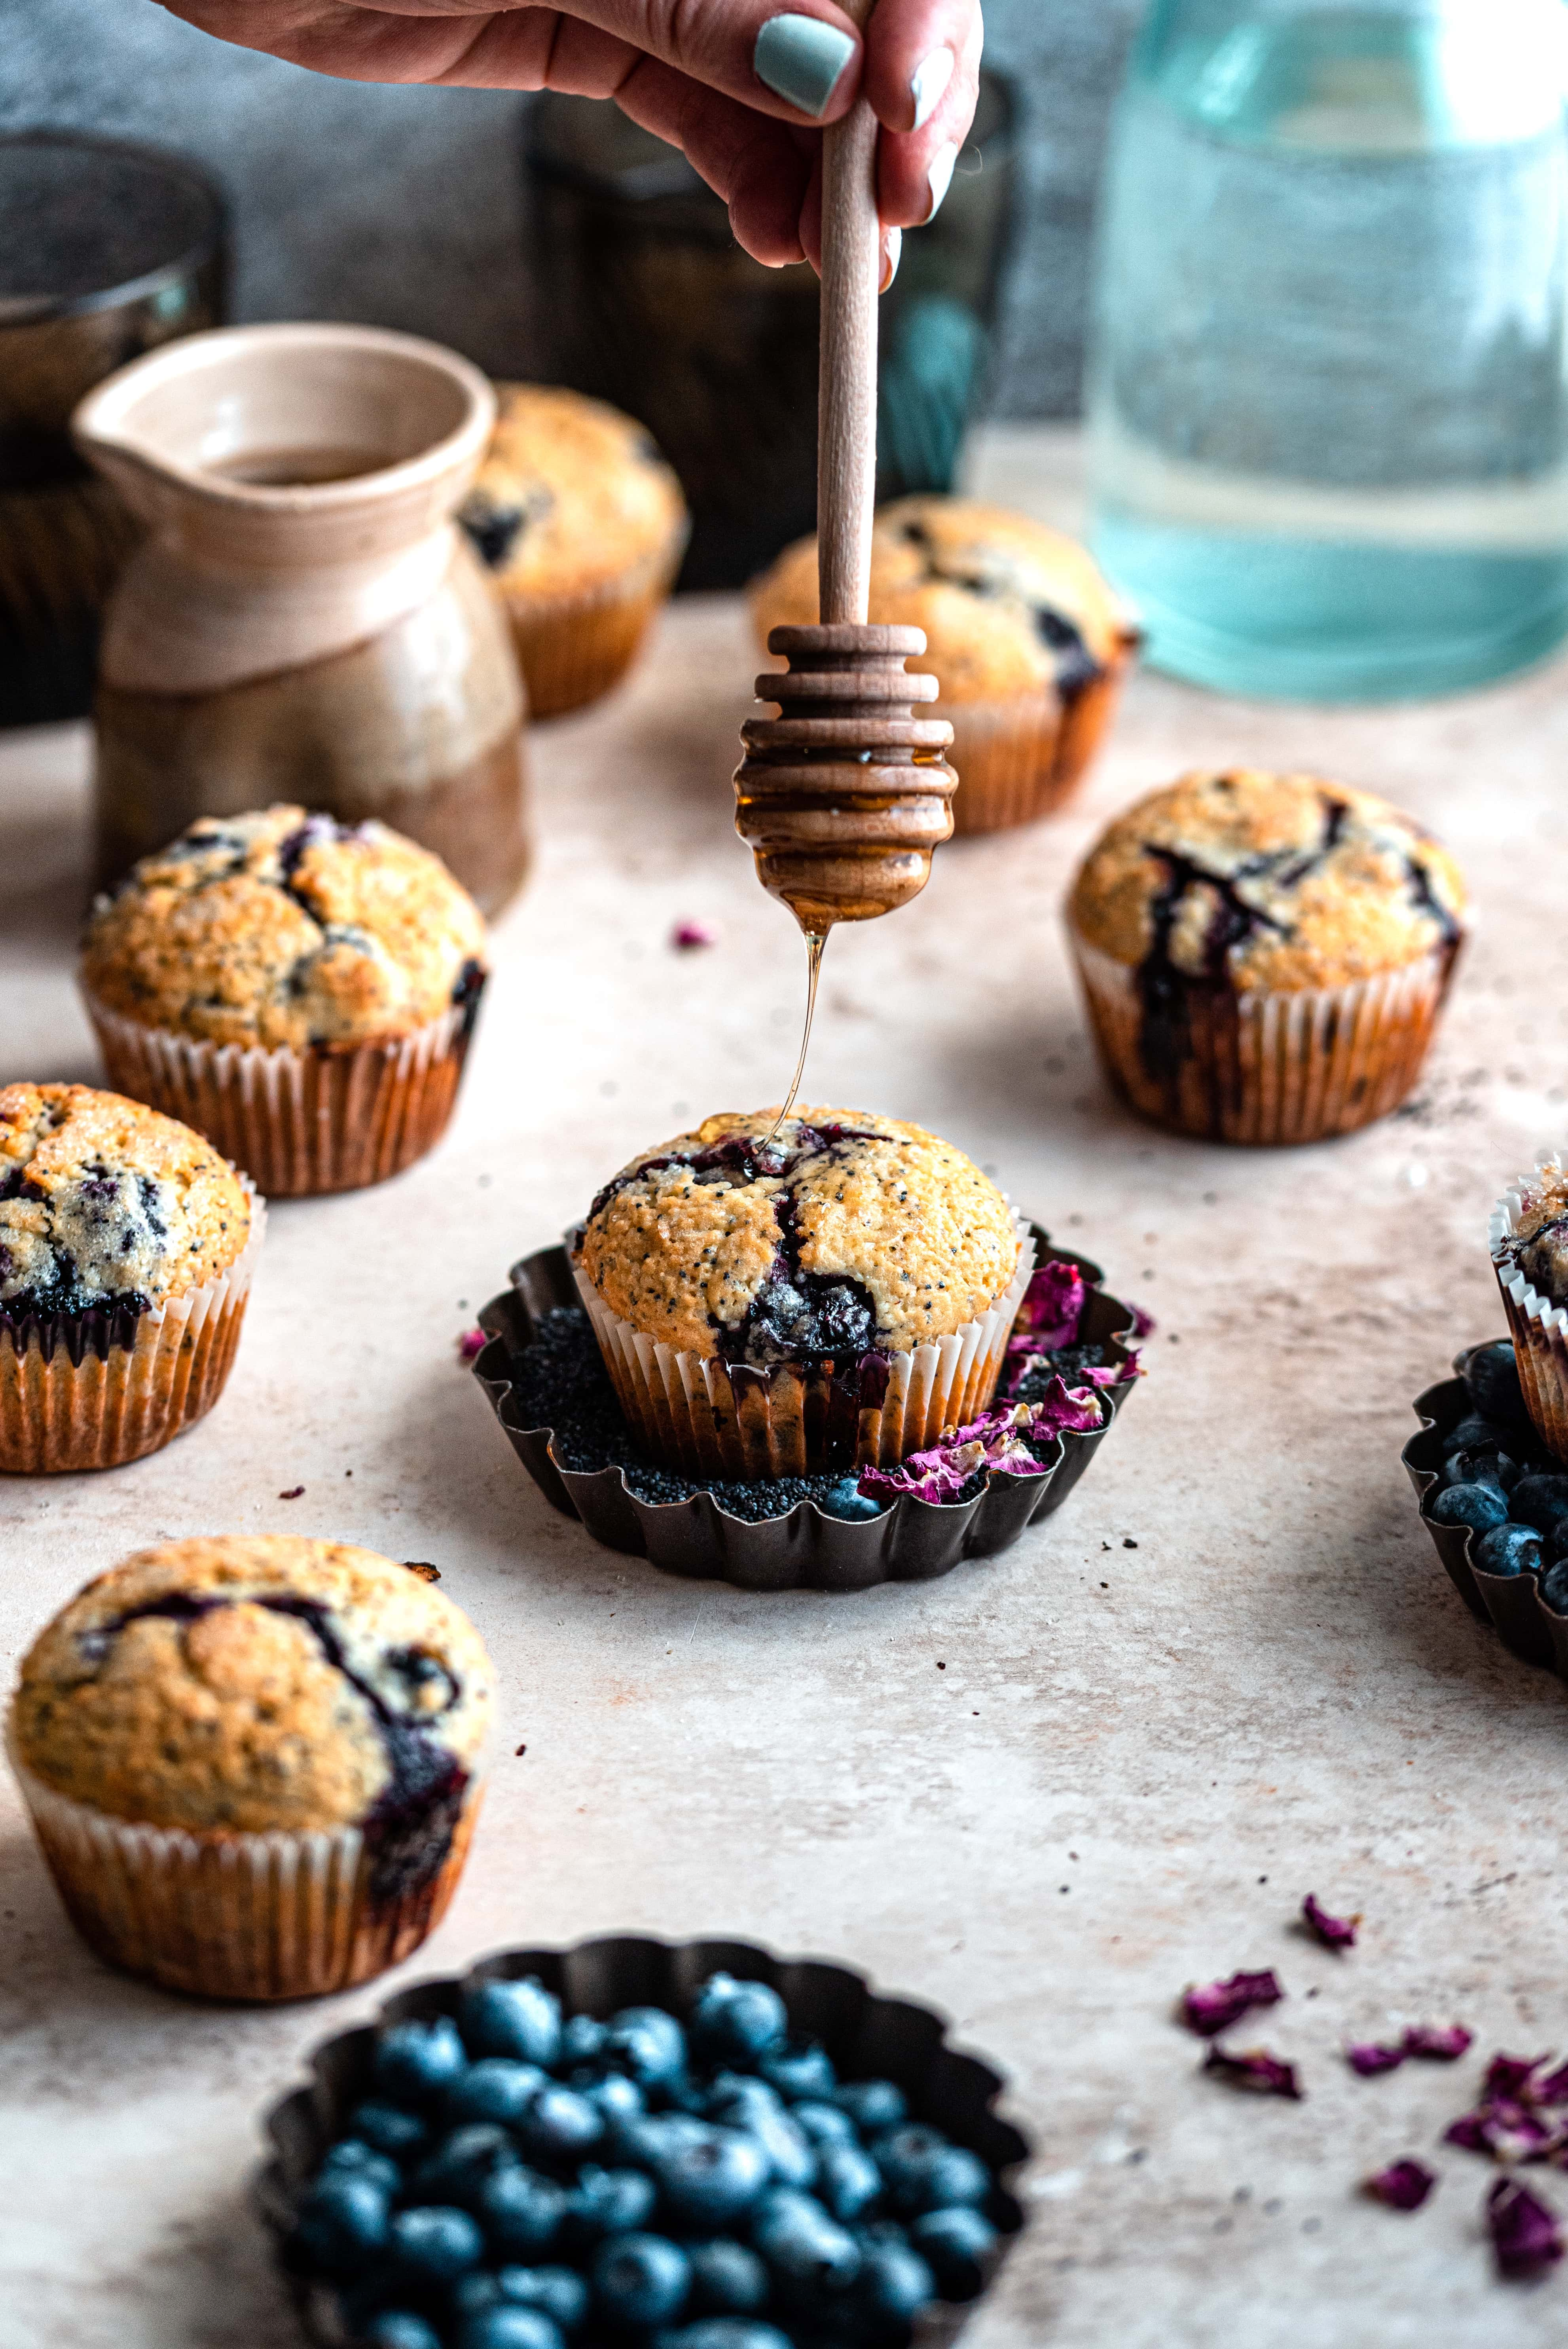 Baked Blueberry Lemon Poppy Seed Muffins